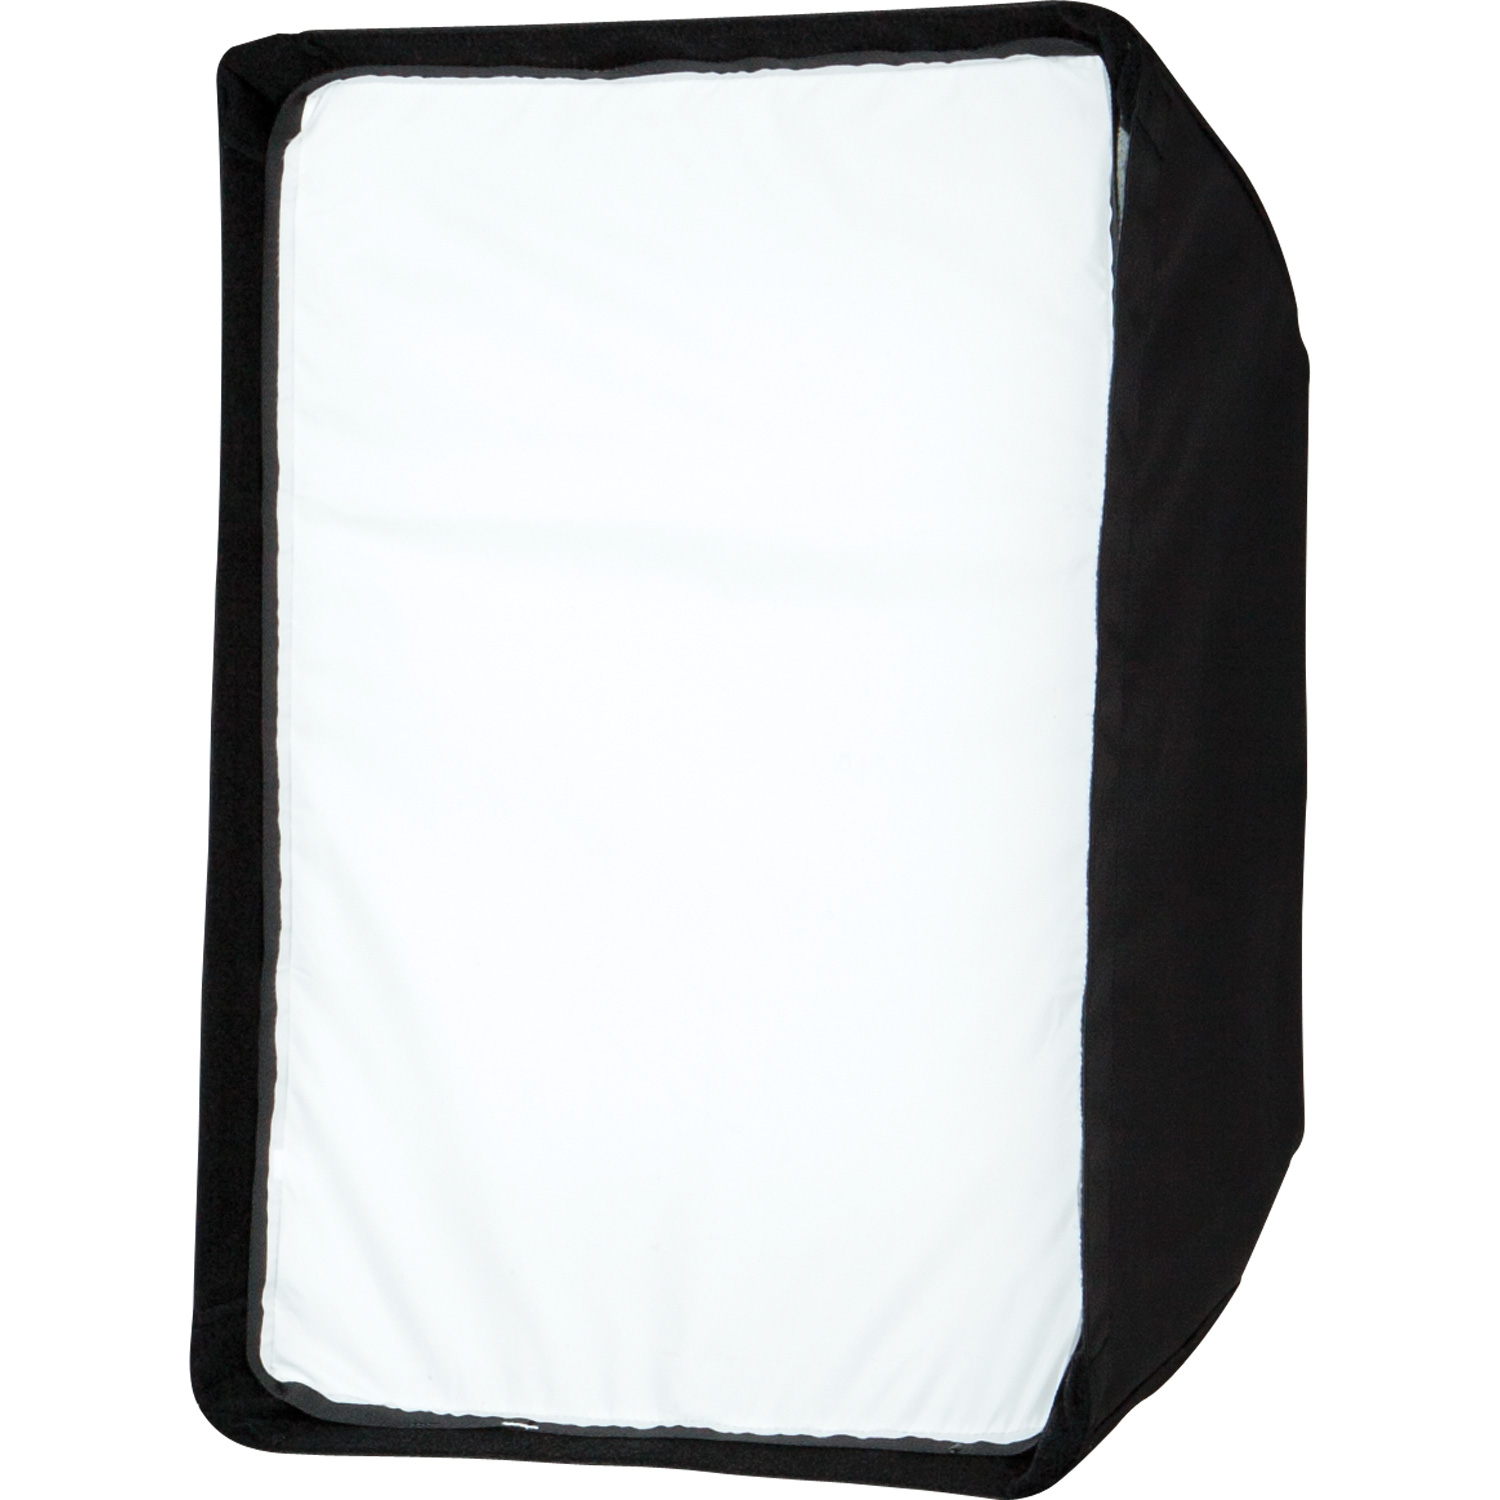 Pro 16-in. x 22-in. Softbox